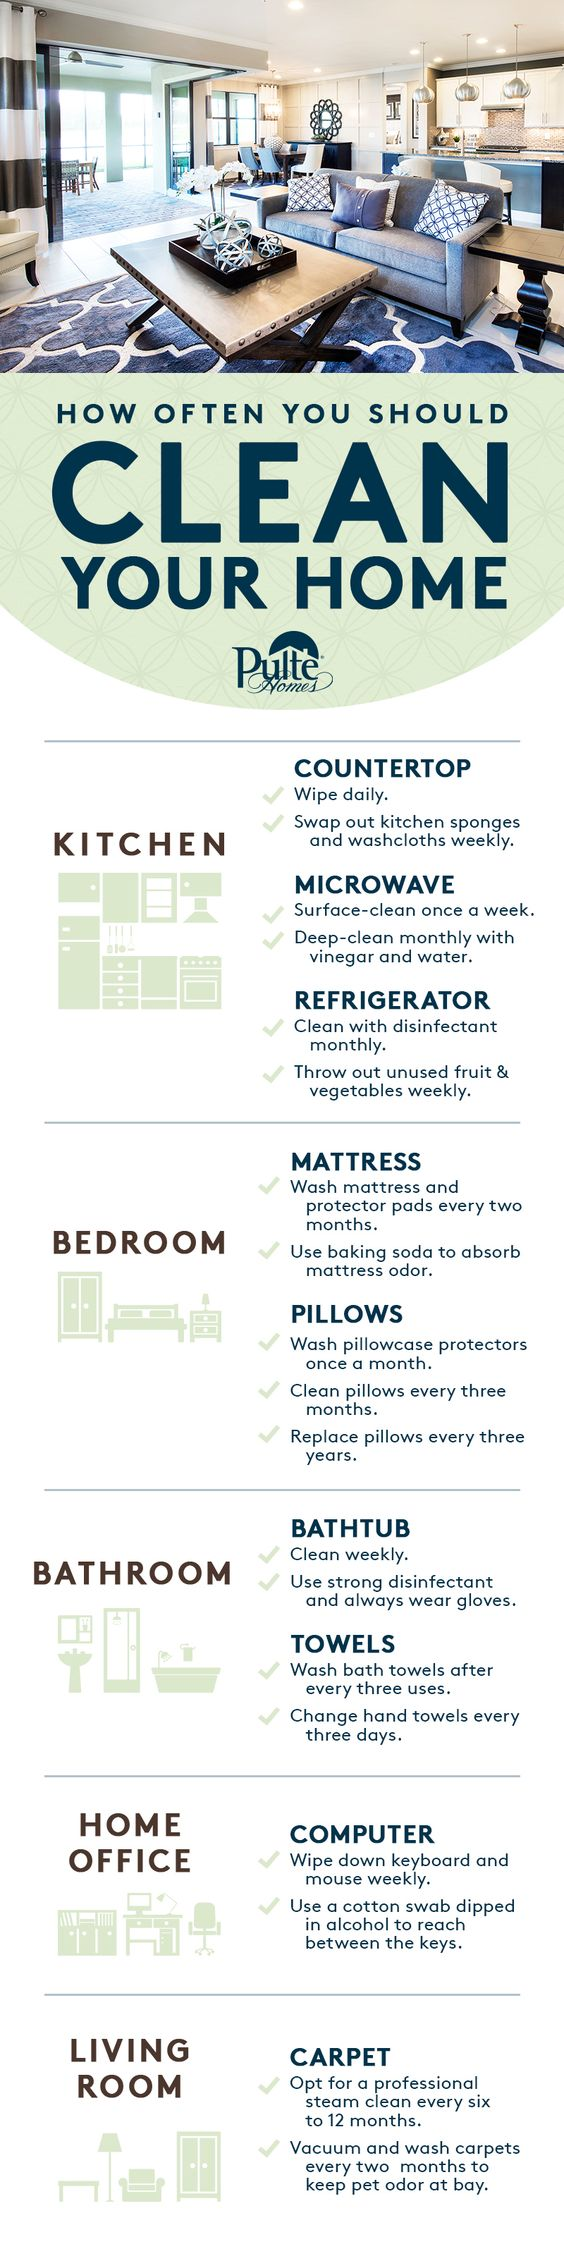 Home Bathroom And Bedrooms On Pinterest